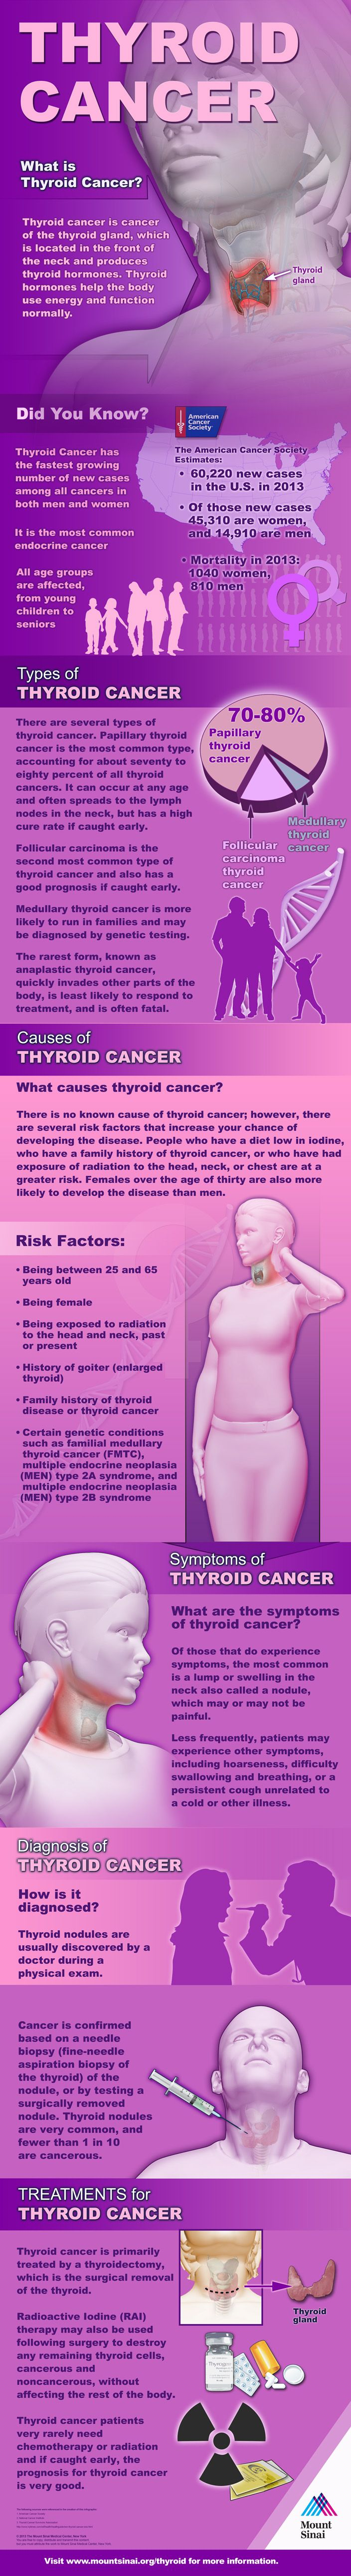 Learn more about thyroiMore than 60,200 new cases of thyroid cancer are diagnosed each year in the U.S., including more than 45,000 women. If caught early, the prognosis is very good. Discover facts, risk factors, symptoms and treatments for this common endocrine cancer. - See more at: http://www.mountsinai.org/patient-care/service-areas/ent/infographic/thyroidcancerinfo#sthash.fcvgsPek.dpufd cancer